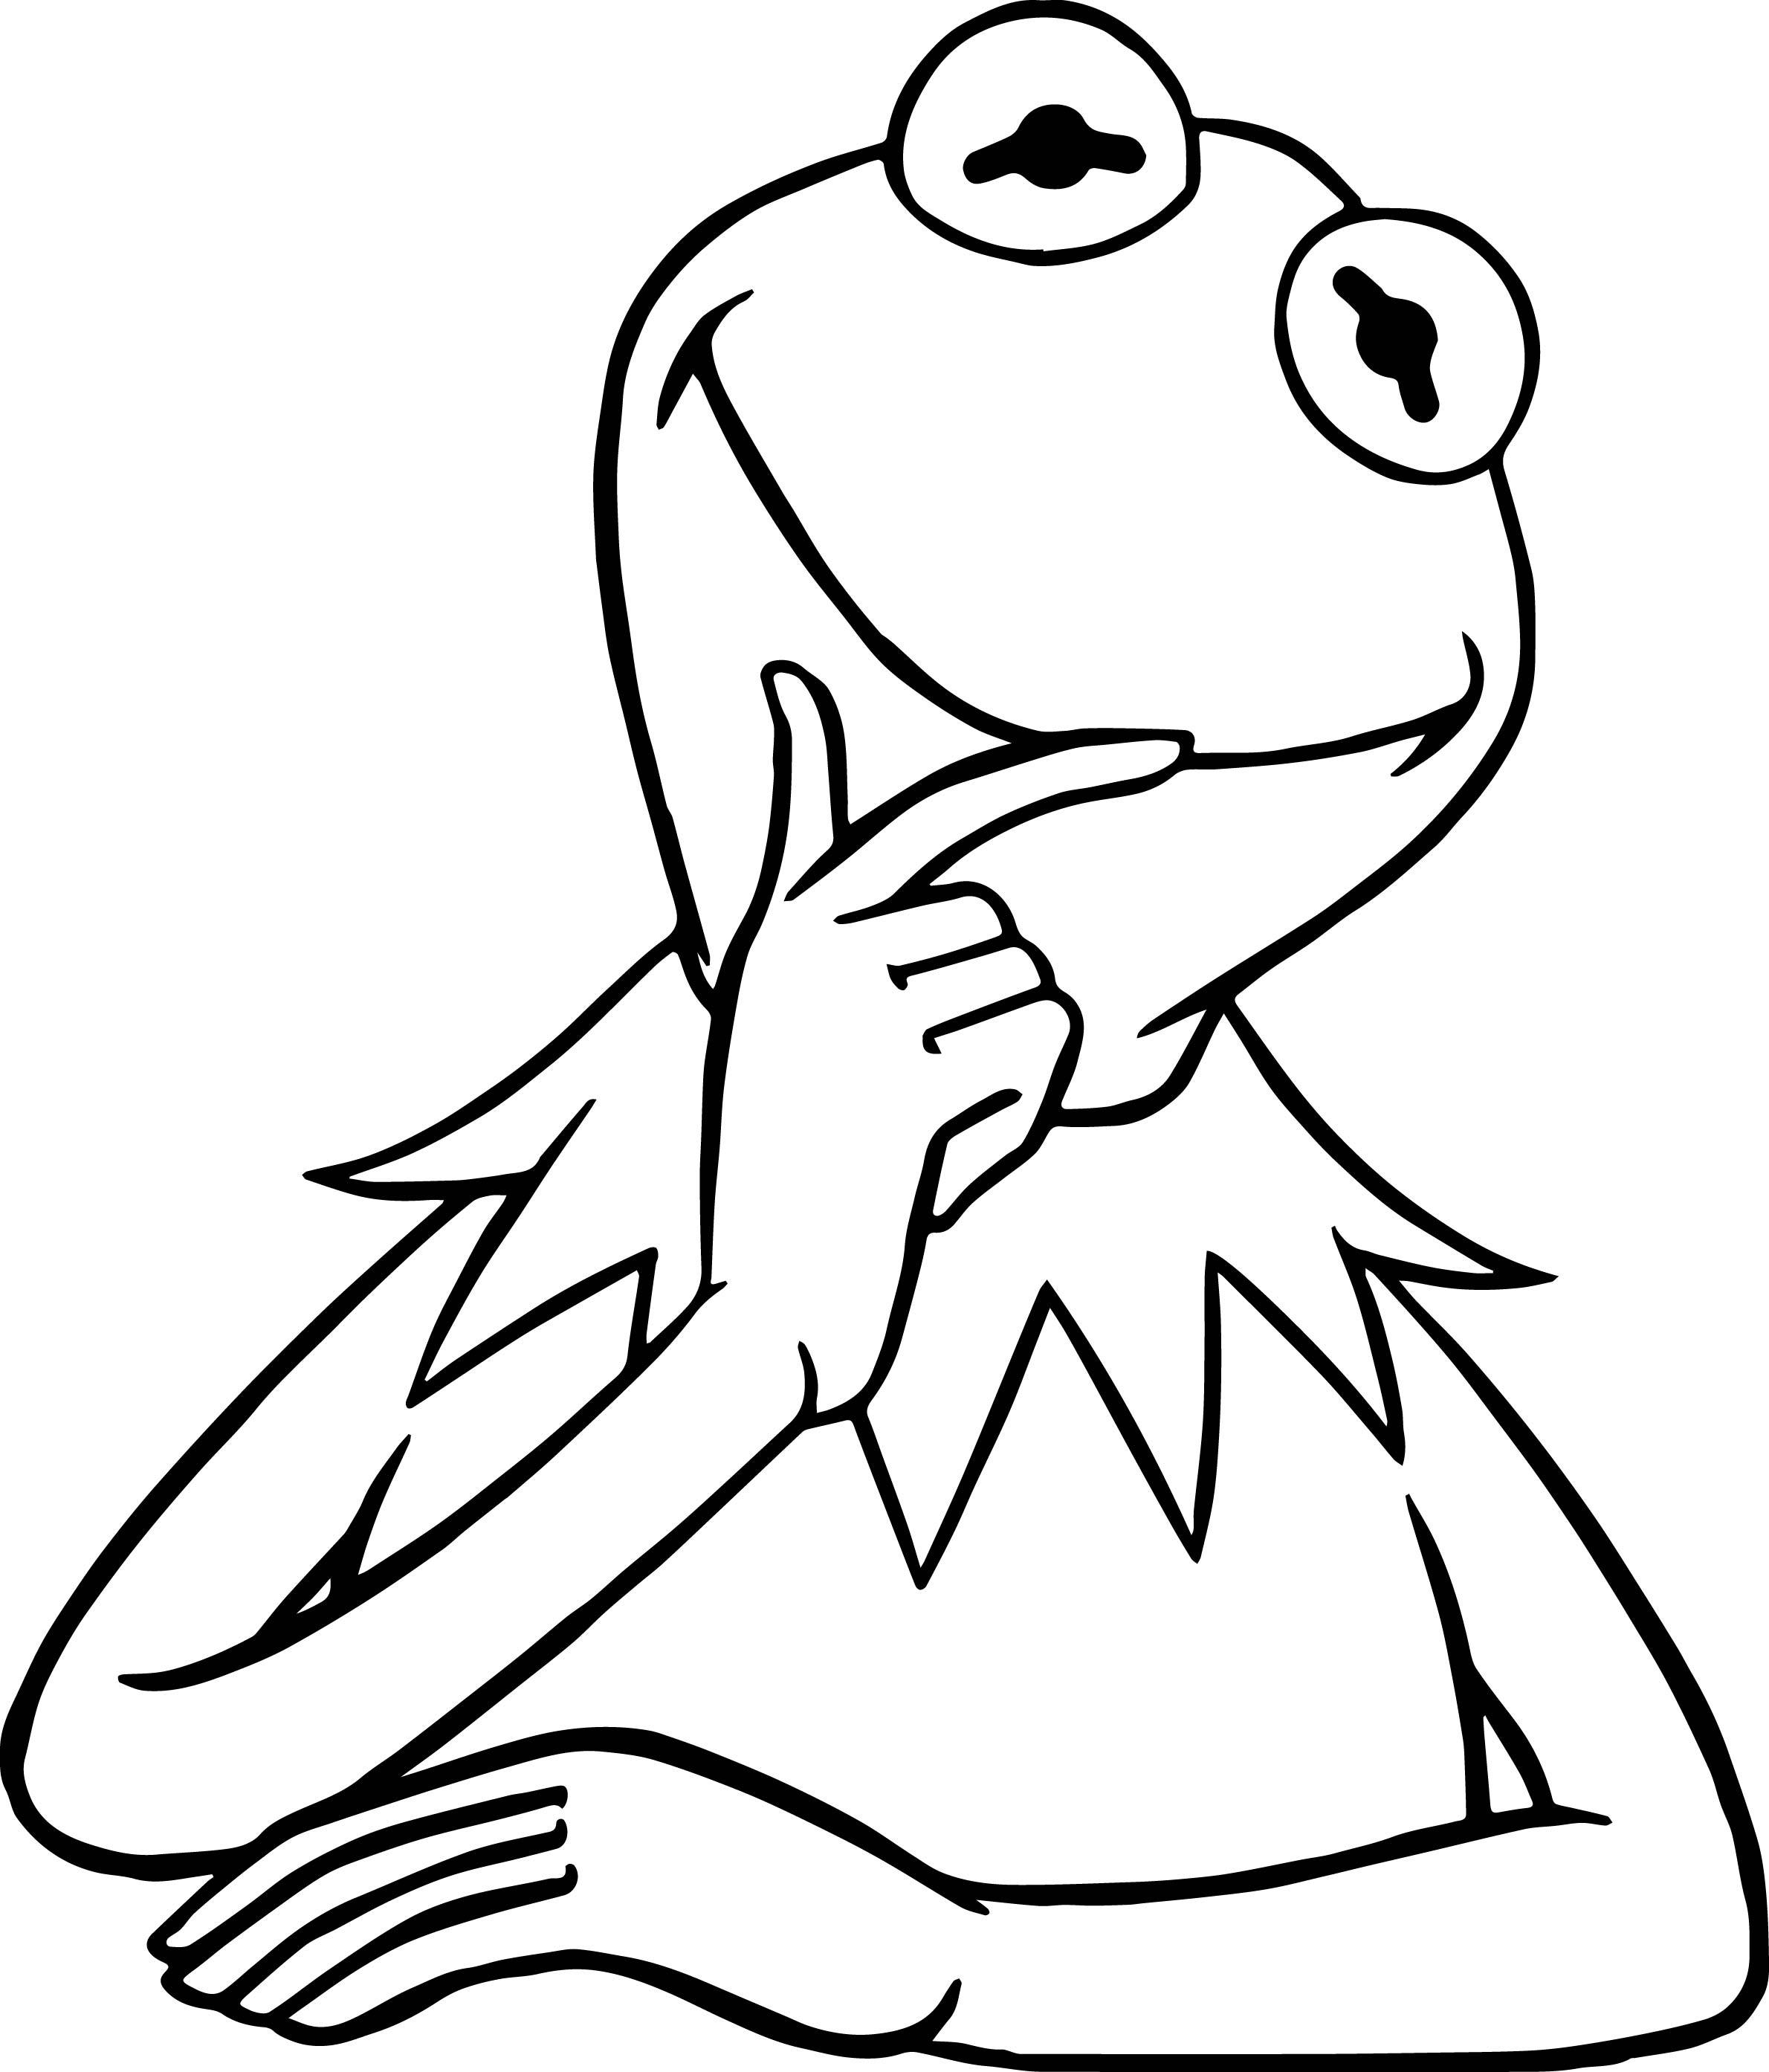 2380x2787 Marvelous The Kermit Frog Think Coloring Pages Wecoloringpage